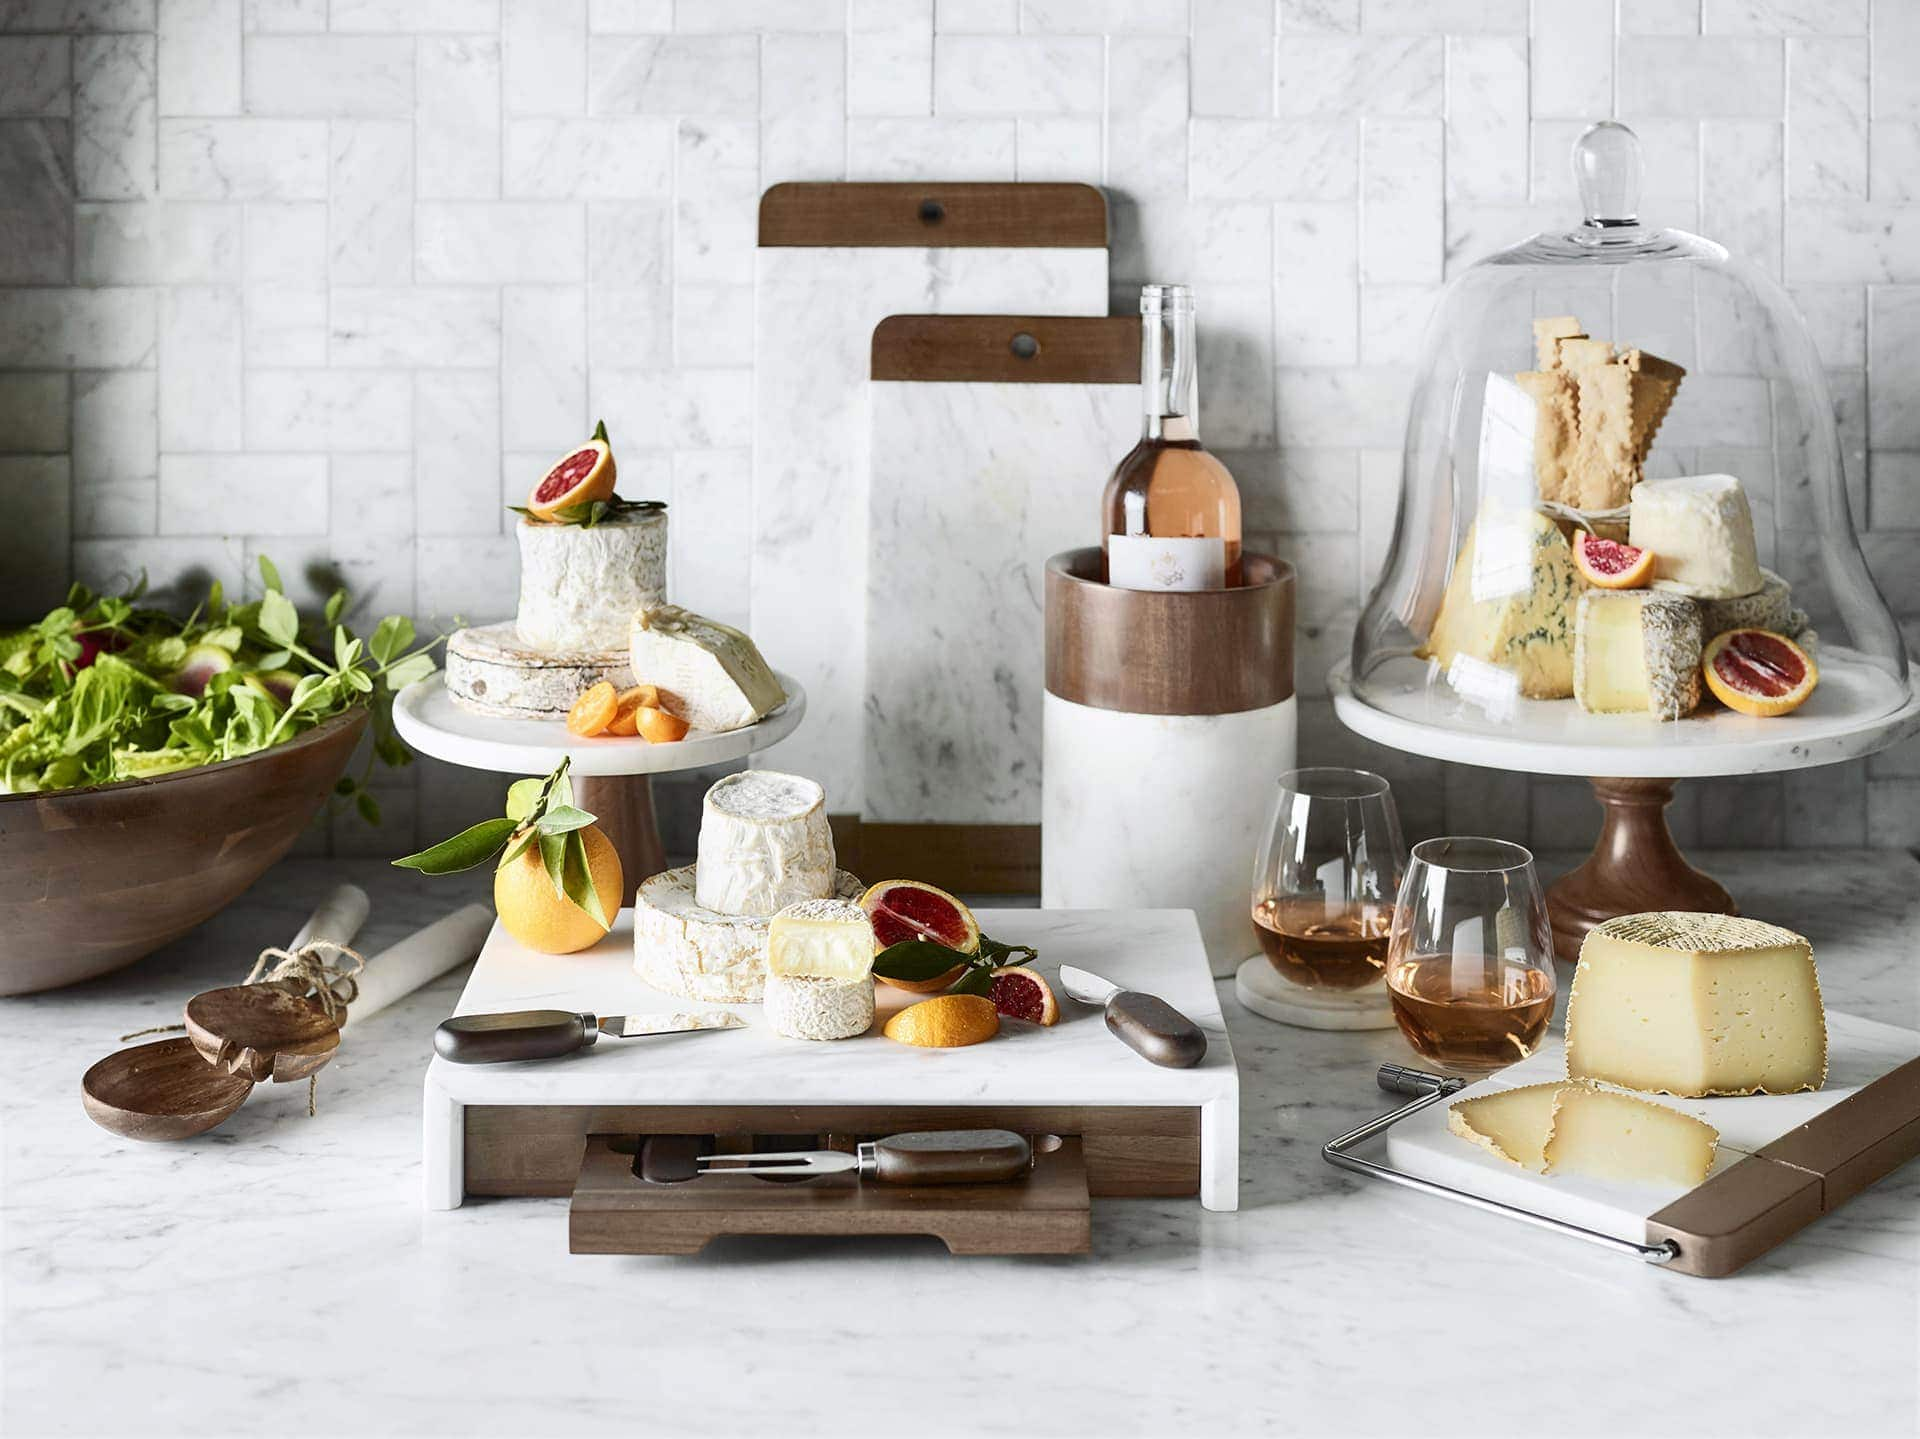 william sonoma marble kitchenware with cheeses